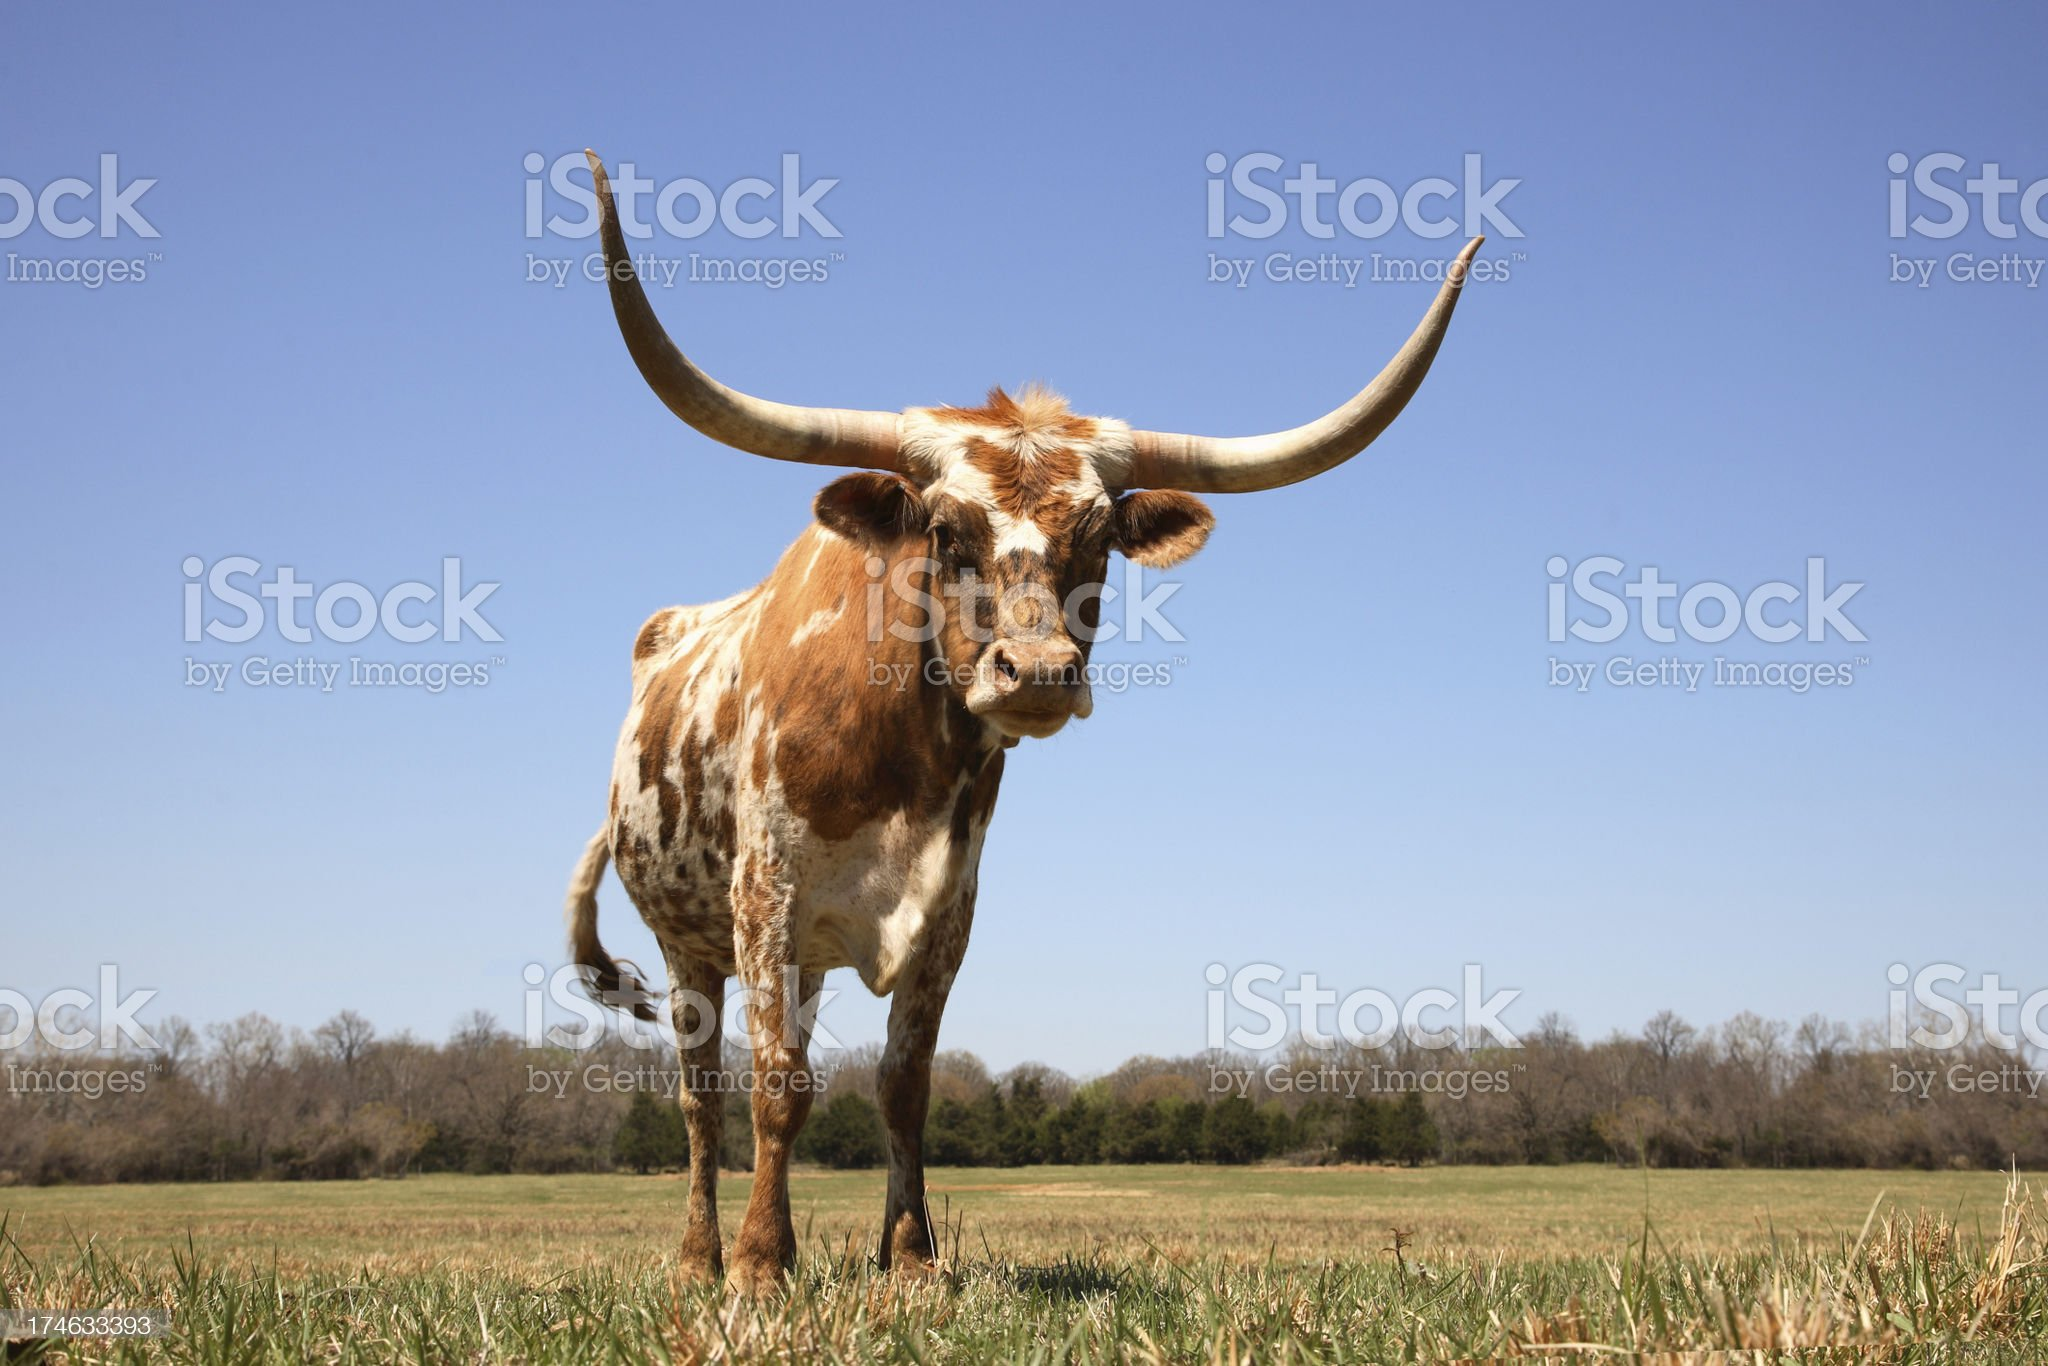 Cow - Texas Longhorn in Field royalty-free stock photo